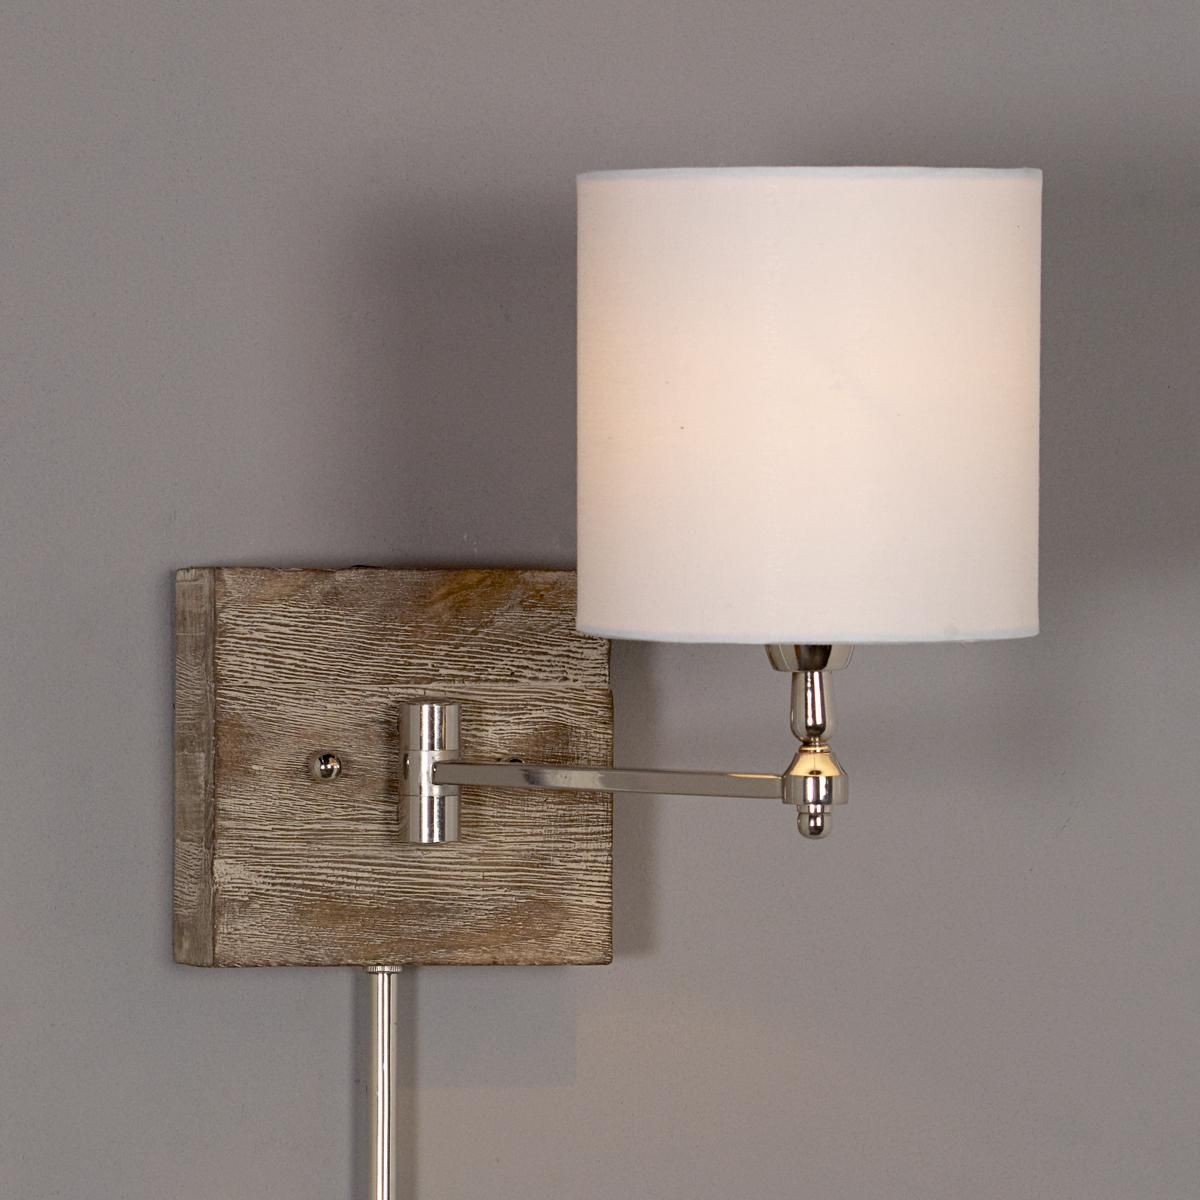 Reclaimed Wood Swing Arm Wall Lamp Swing Arm Wall Lamps Wall Lamp Shades Wall Lamp